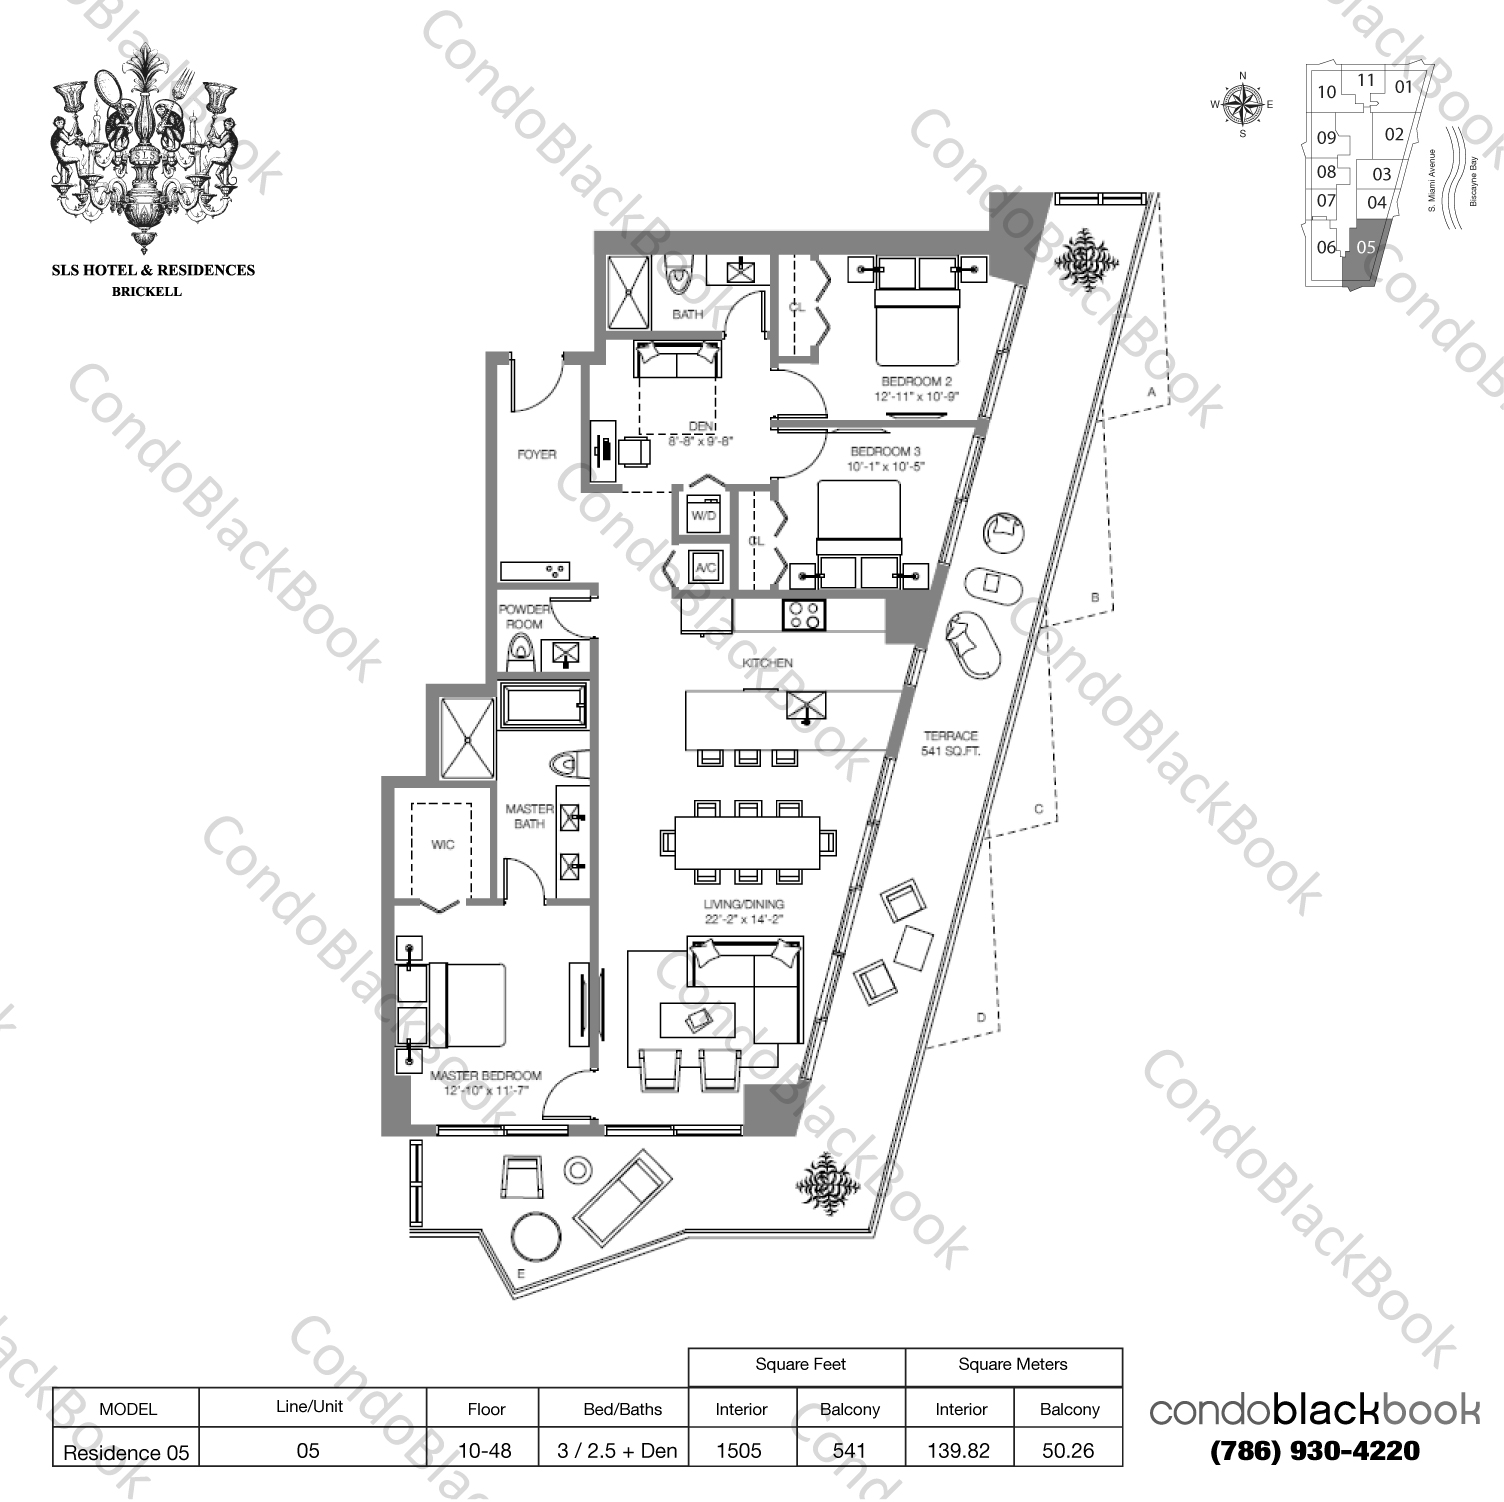 Floor plan for SLS Hotel & Residences Brickell Miami, model RESIDENCE 05, line 05, 3/2.5+Den bedrooms, 2,046 sq ft